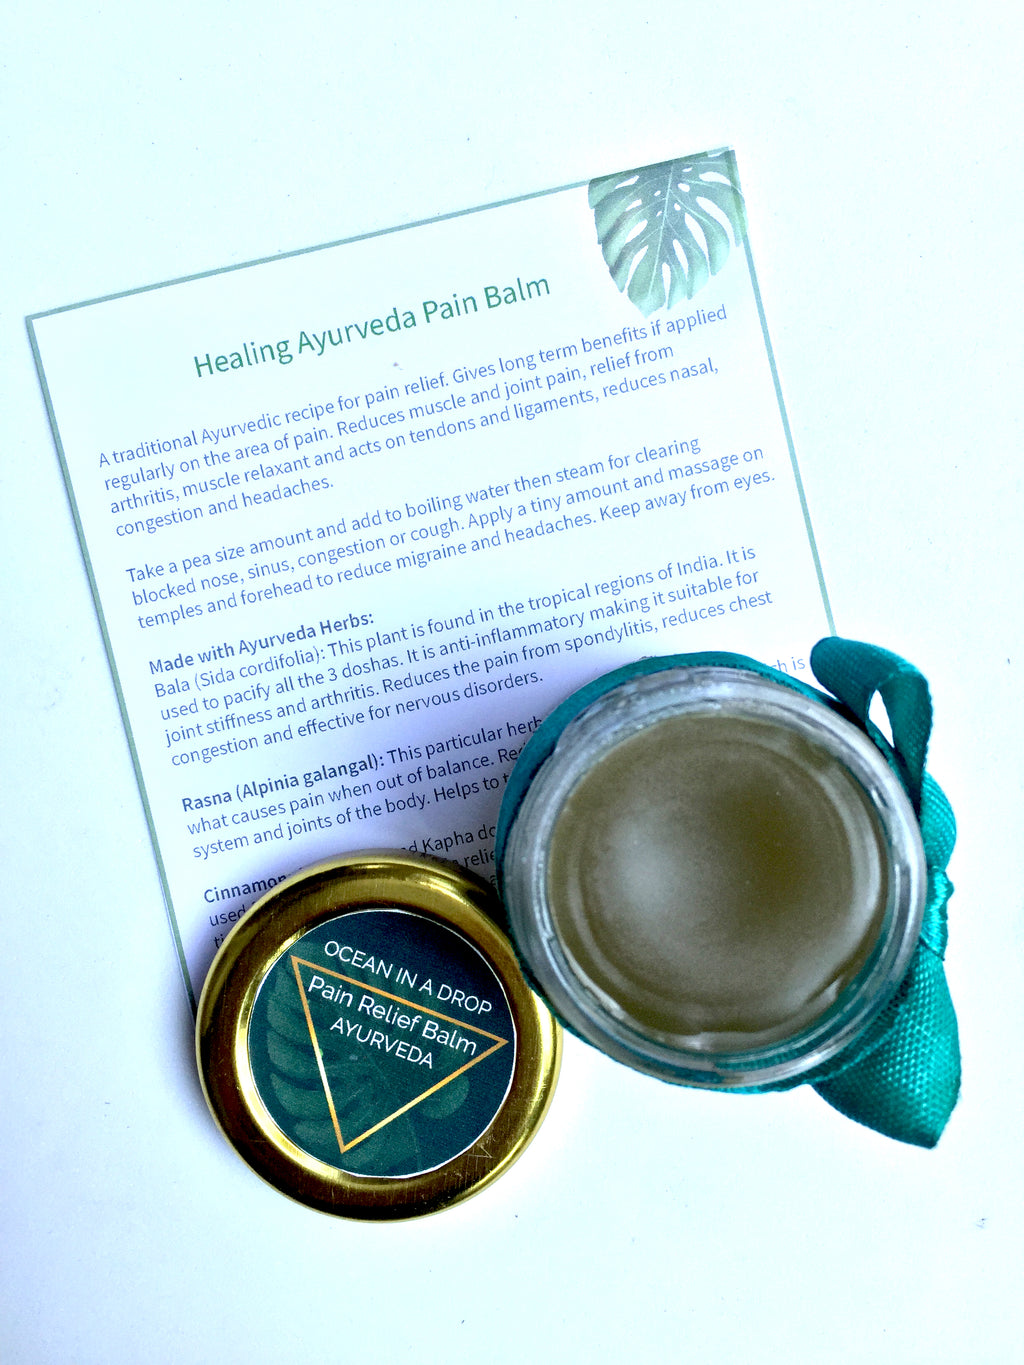 Ayurveda Pain Relief Balm